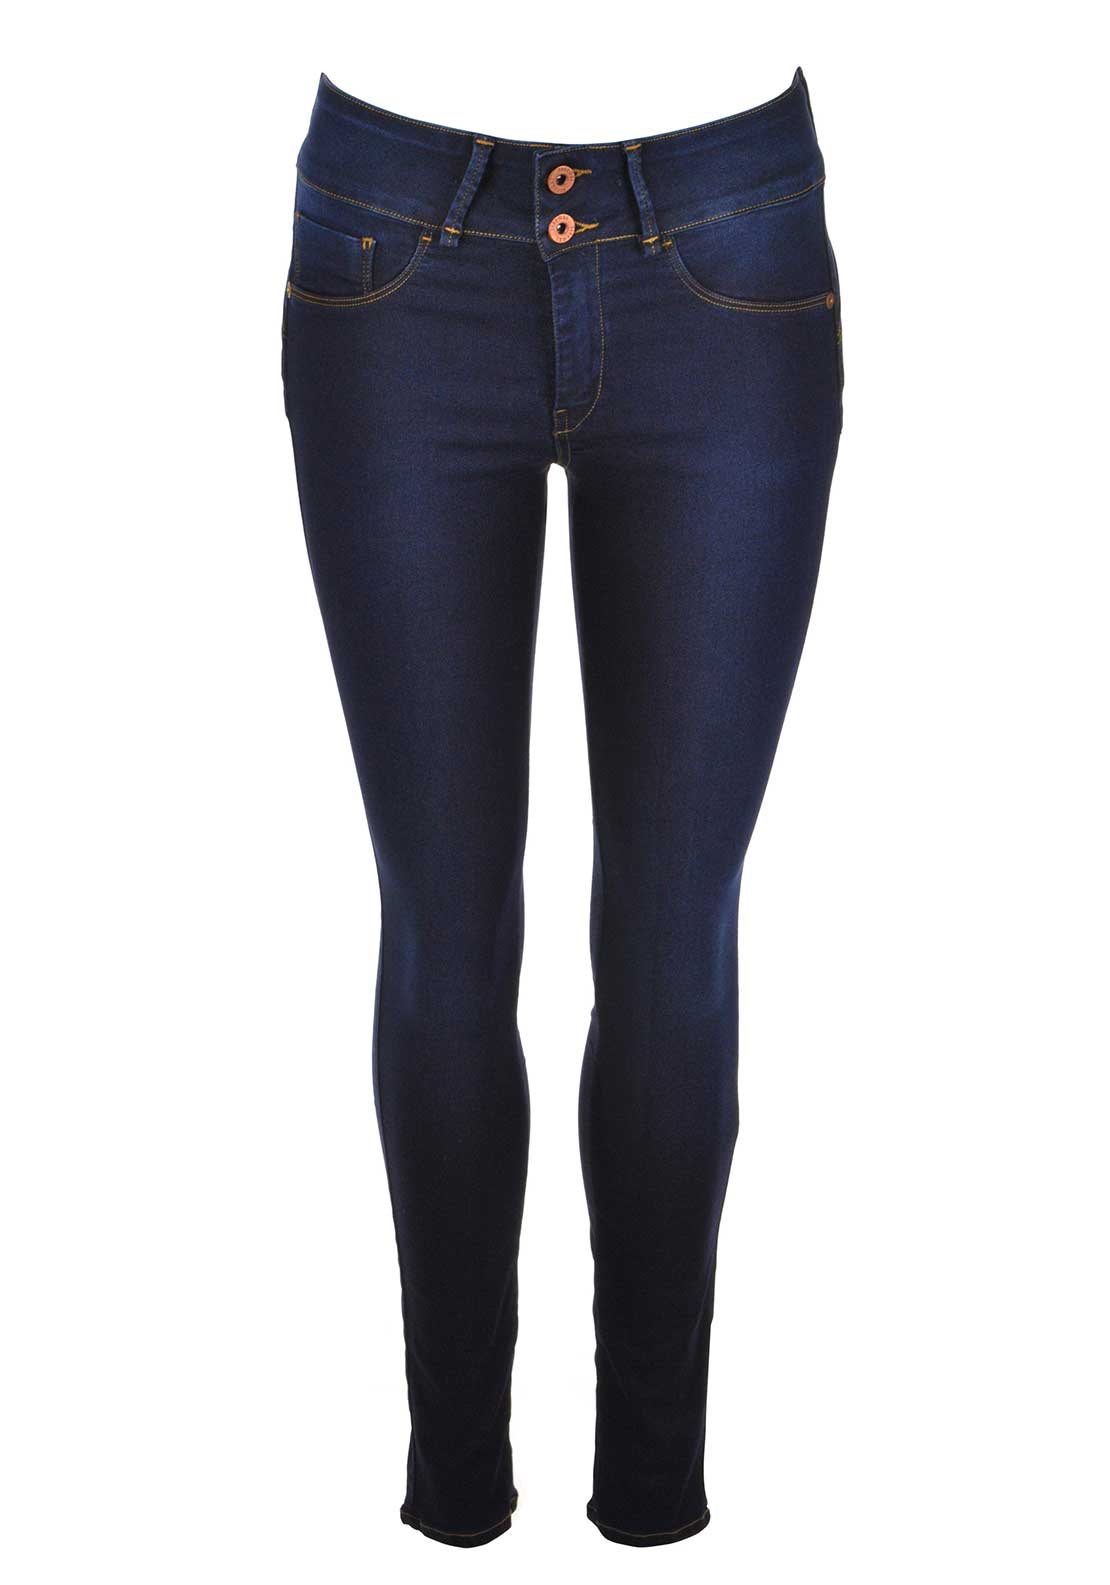 Tiffosi Womens One Size Double Up Skinny Jeans, Dark Blue Denim